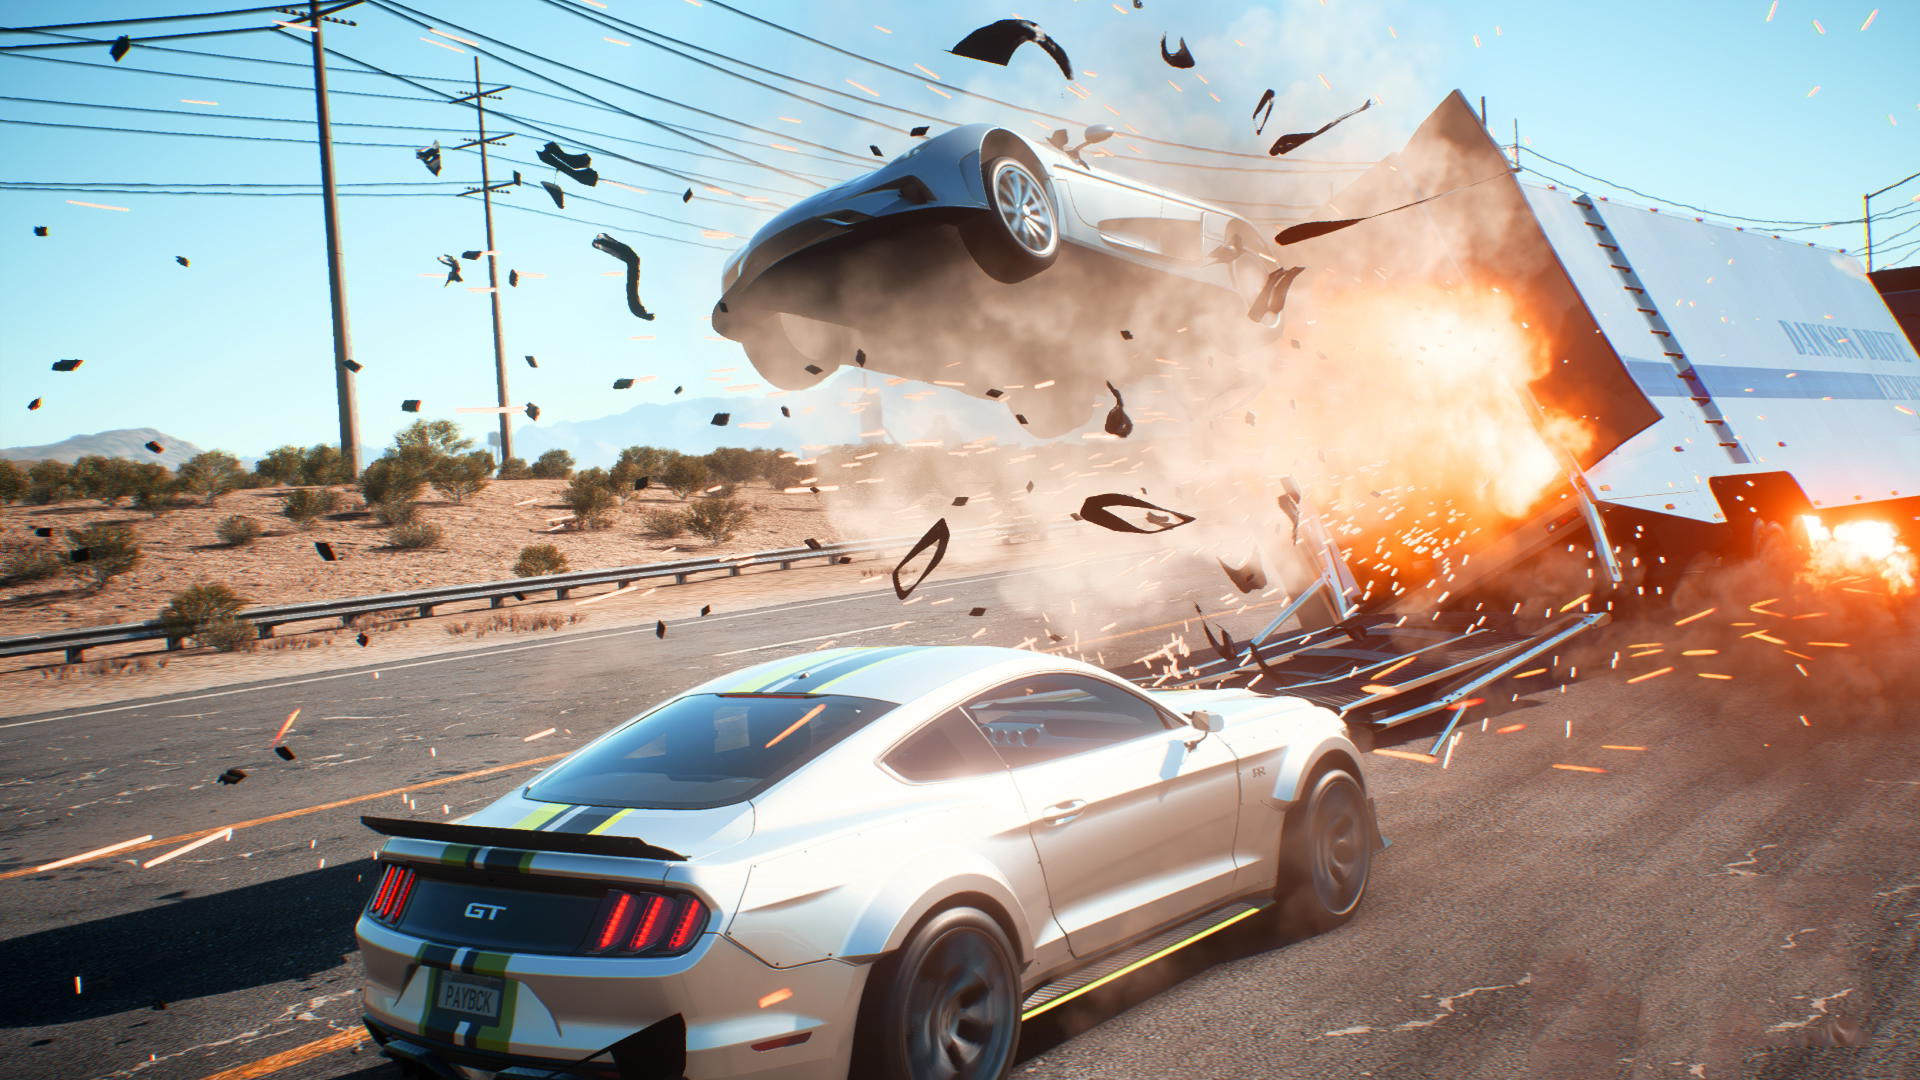 Need For Speed Payback Review Silly Over The Top And A Little Bit Self Indulgent But In A Fantastic Action Movie Way Gamesradar